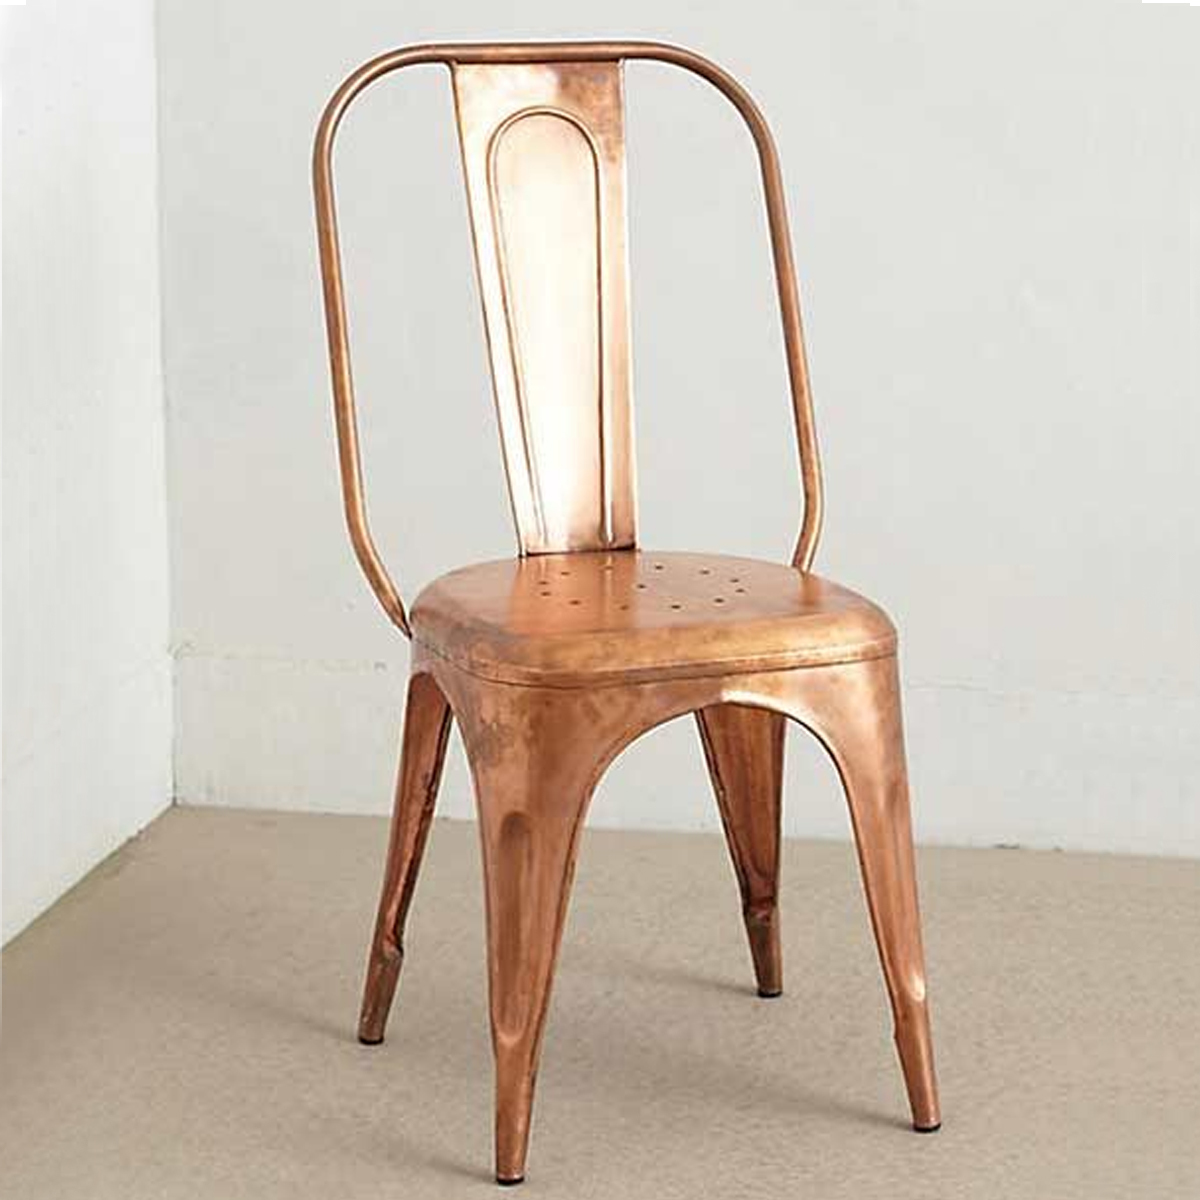 Anthropologie Redsmith Dining Chair photo